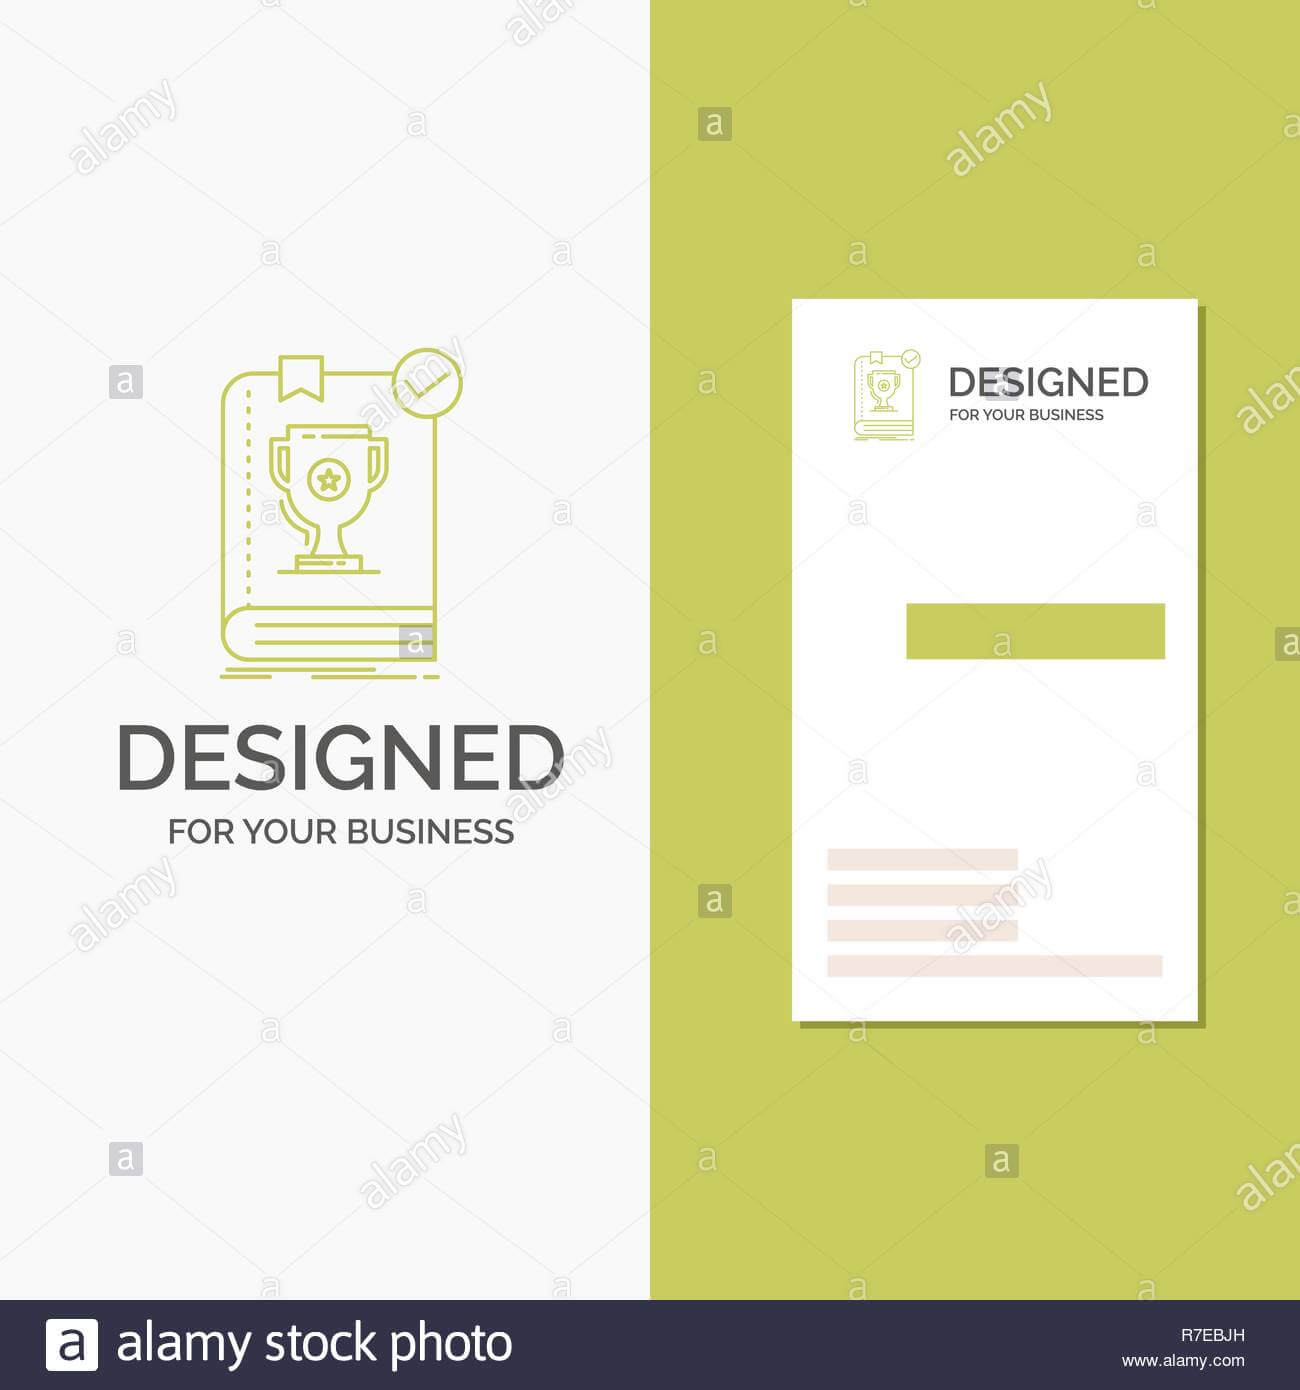 Business Logo For 554, Book, Dominion, Leader, Rule, Rules For Dominion Card Template